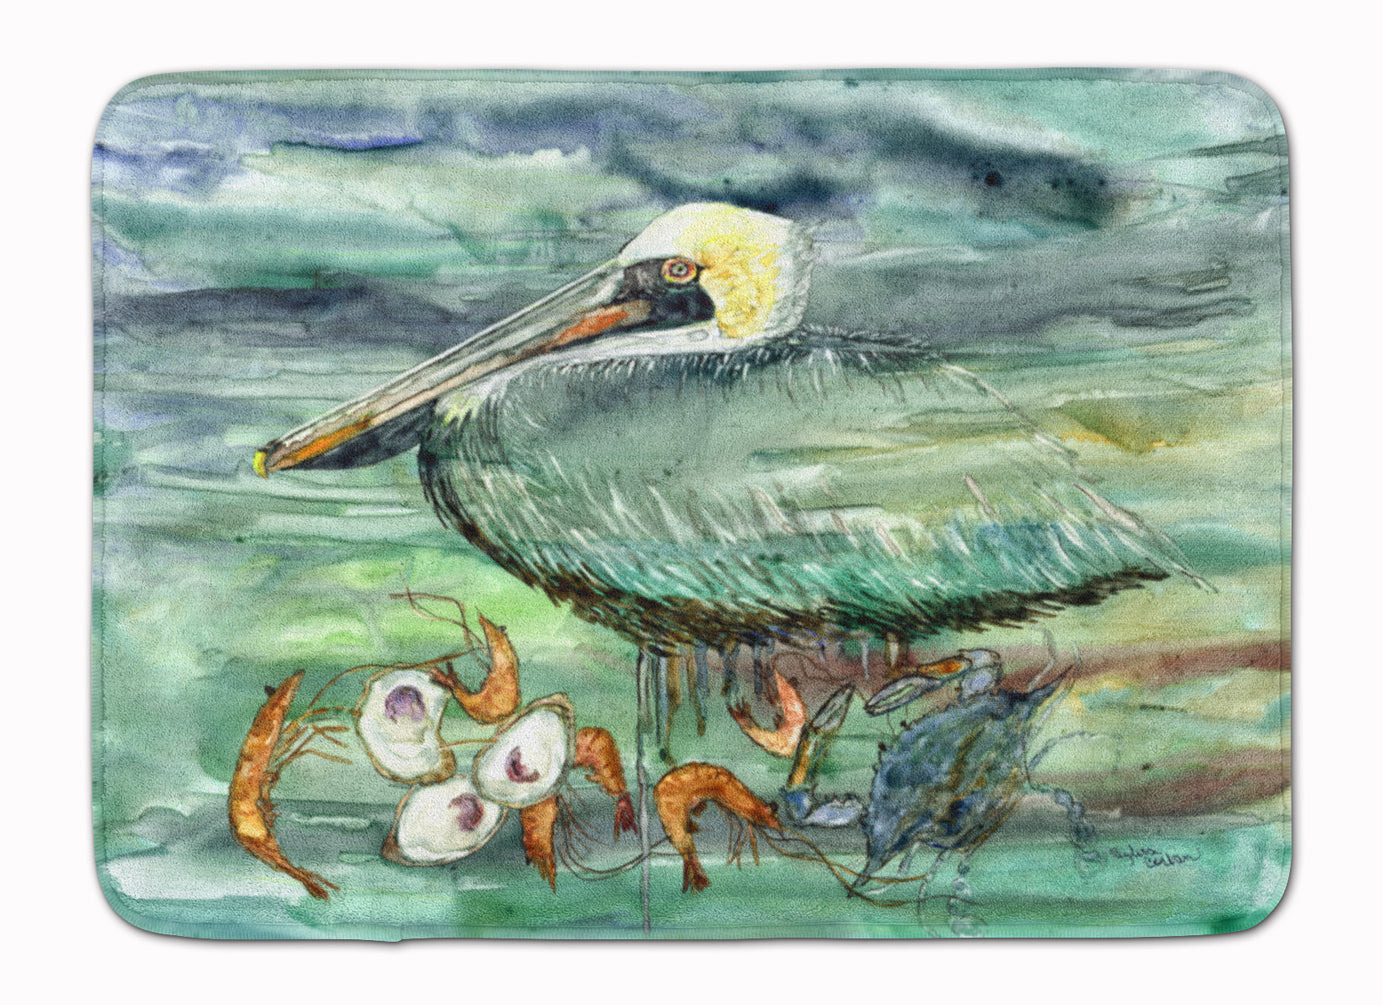 Watery Pelican, Shrimp, Crab and Oysters Machine Washable Memory Foam Mat 8978RUG by Caroline's Treasures